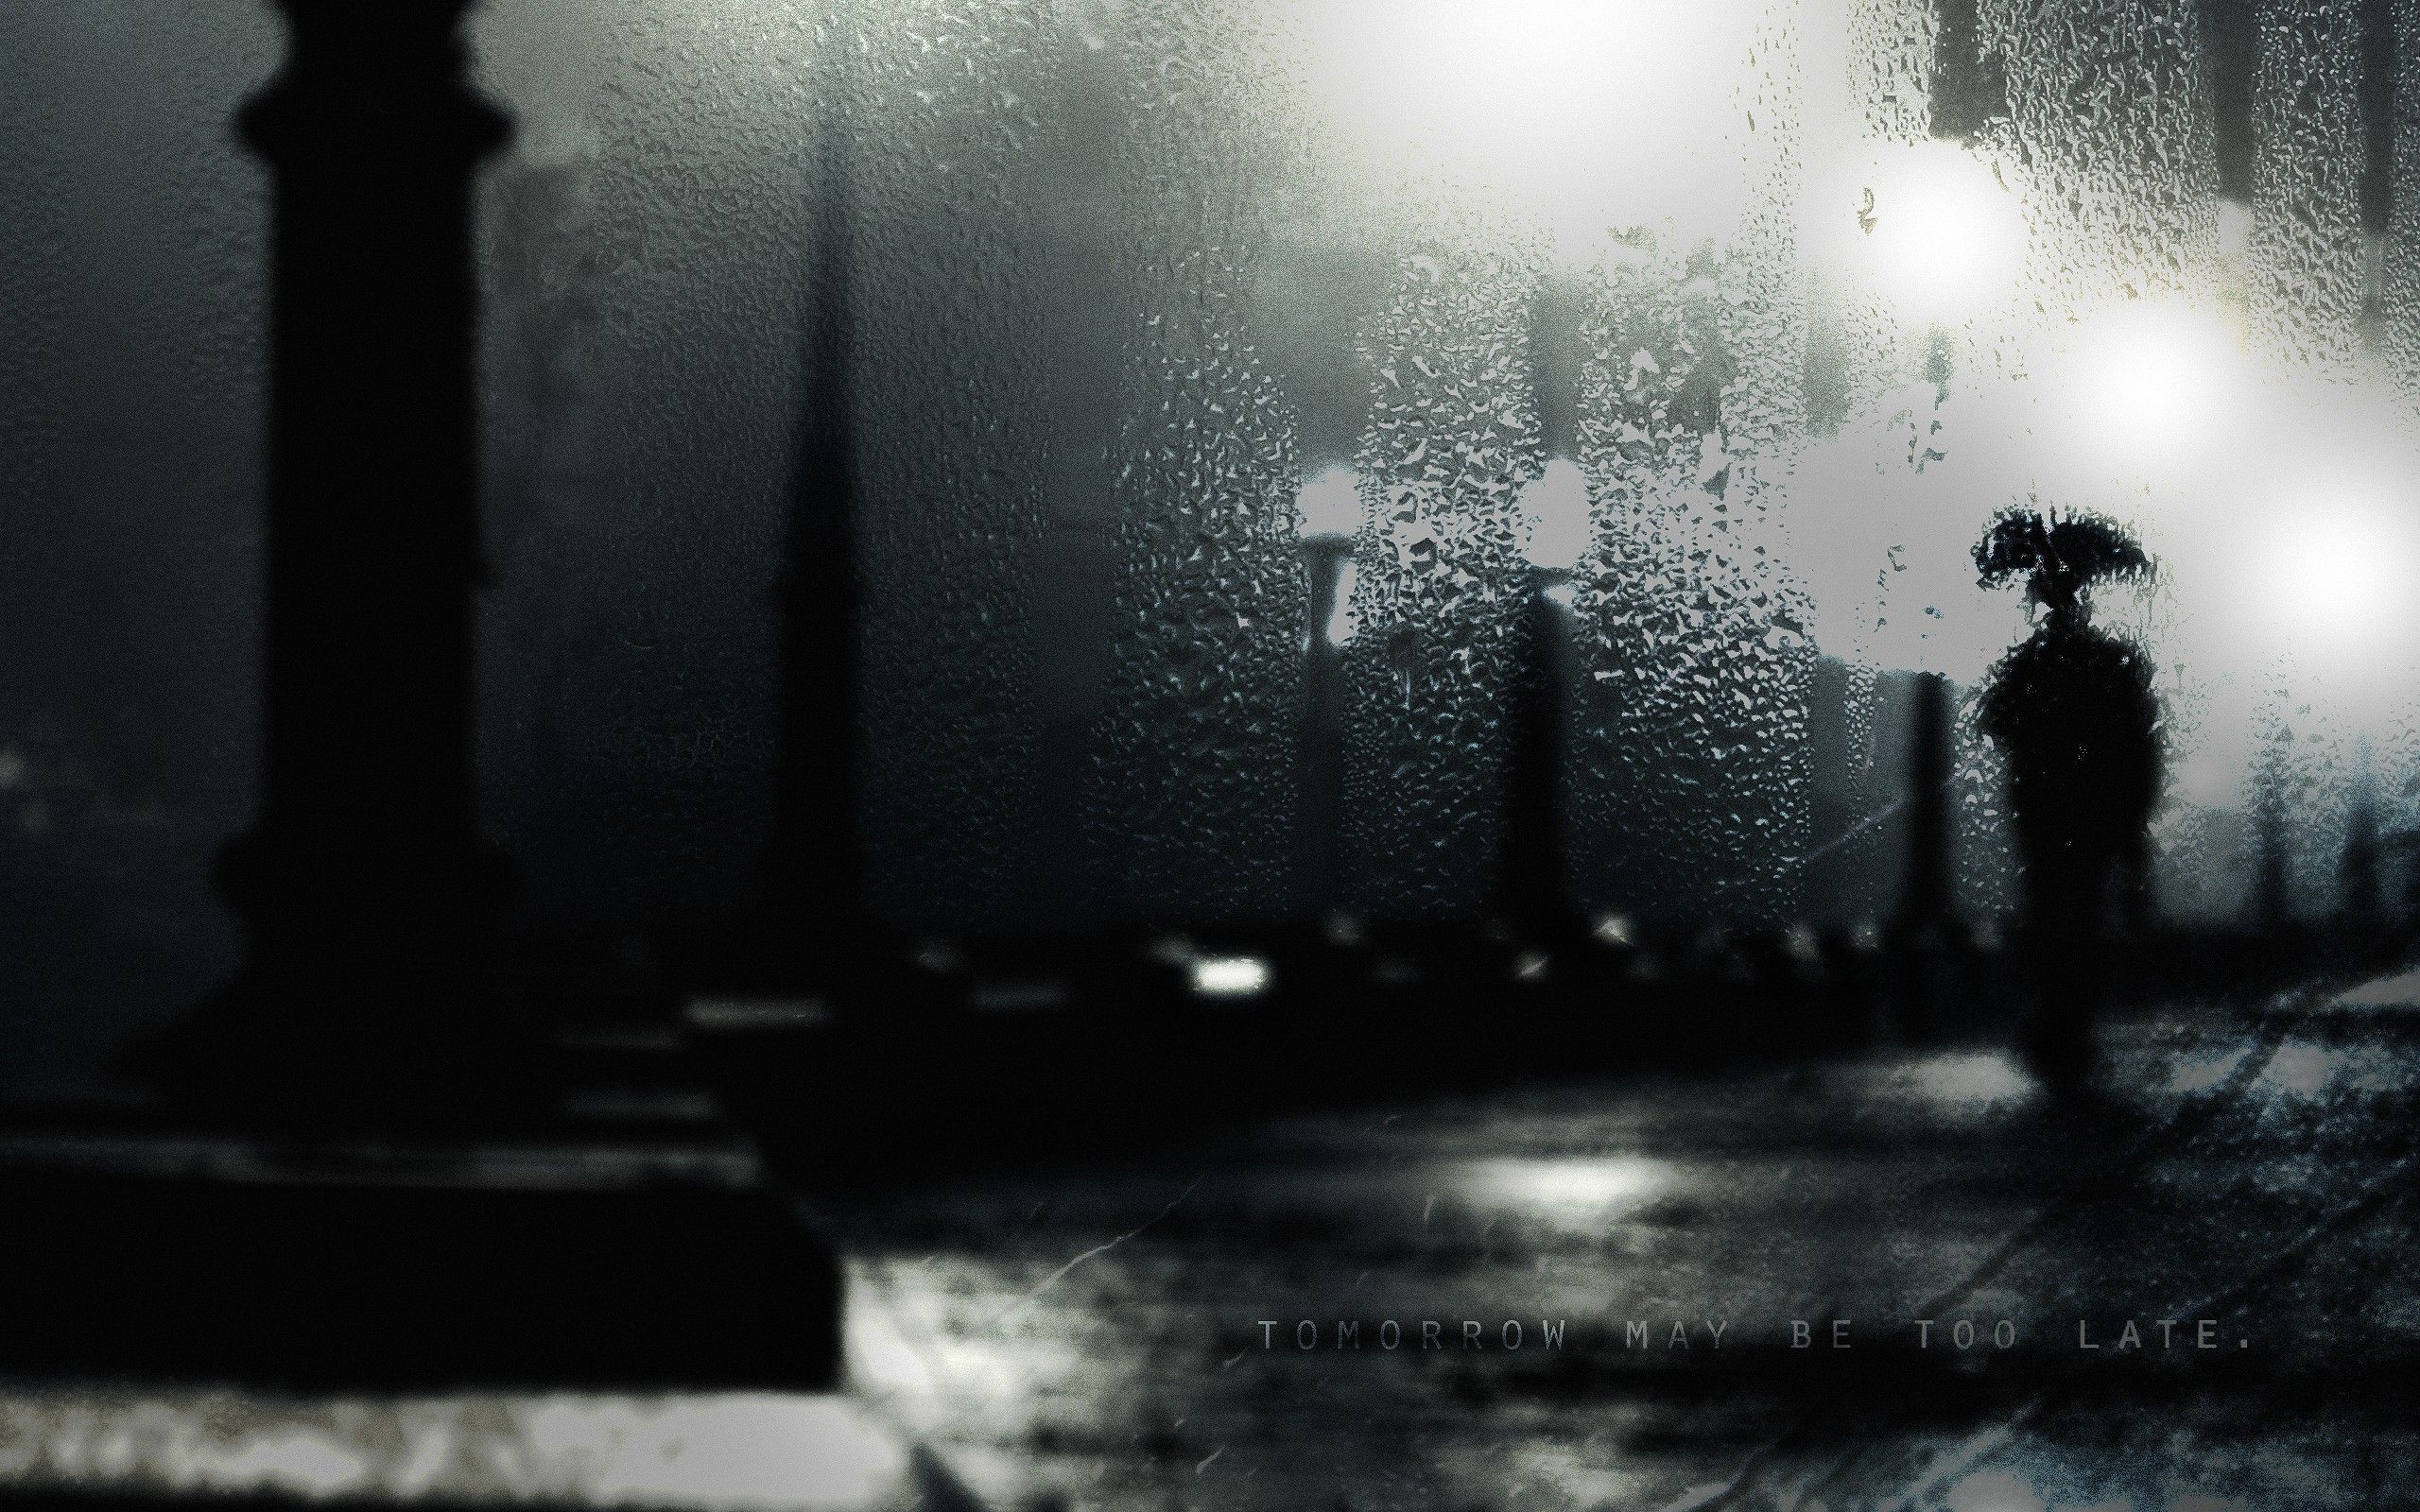 Rainy Night Wallpapers Top Free Rainy Night Backgrounds